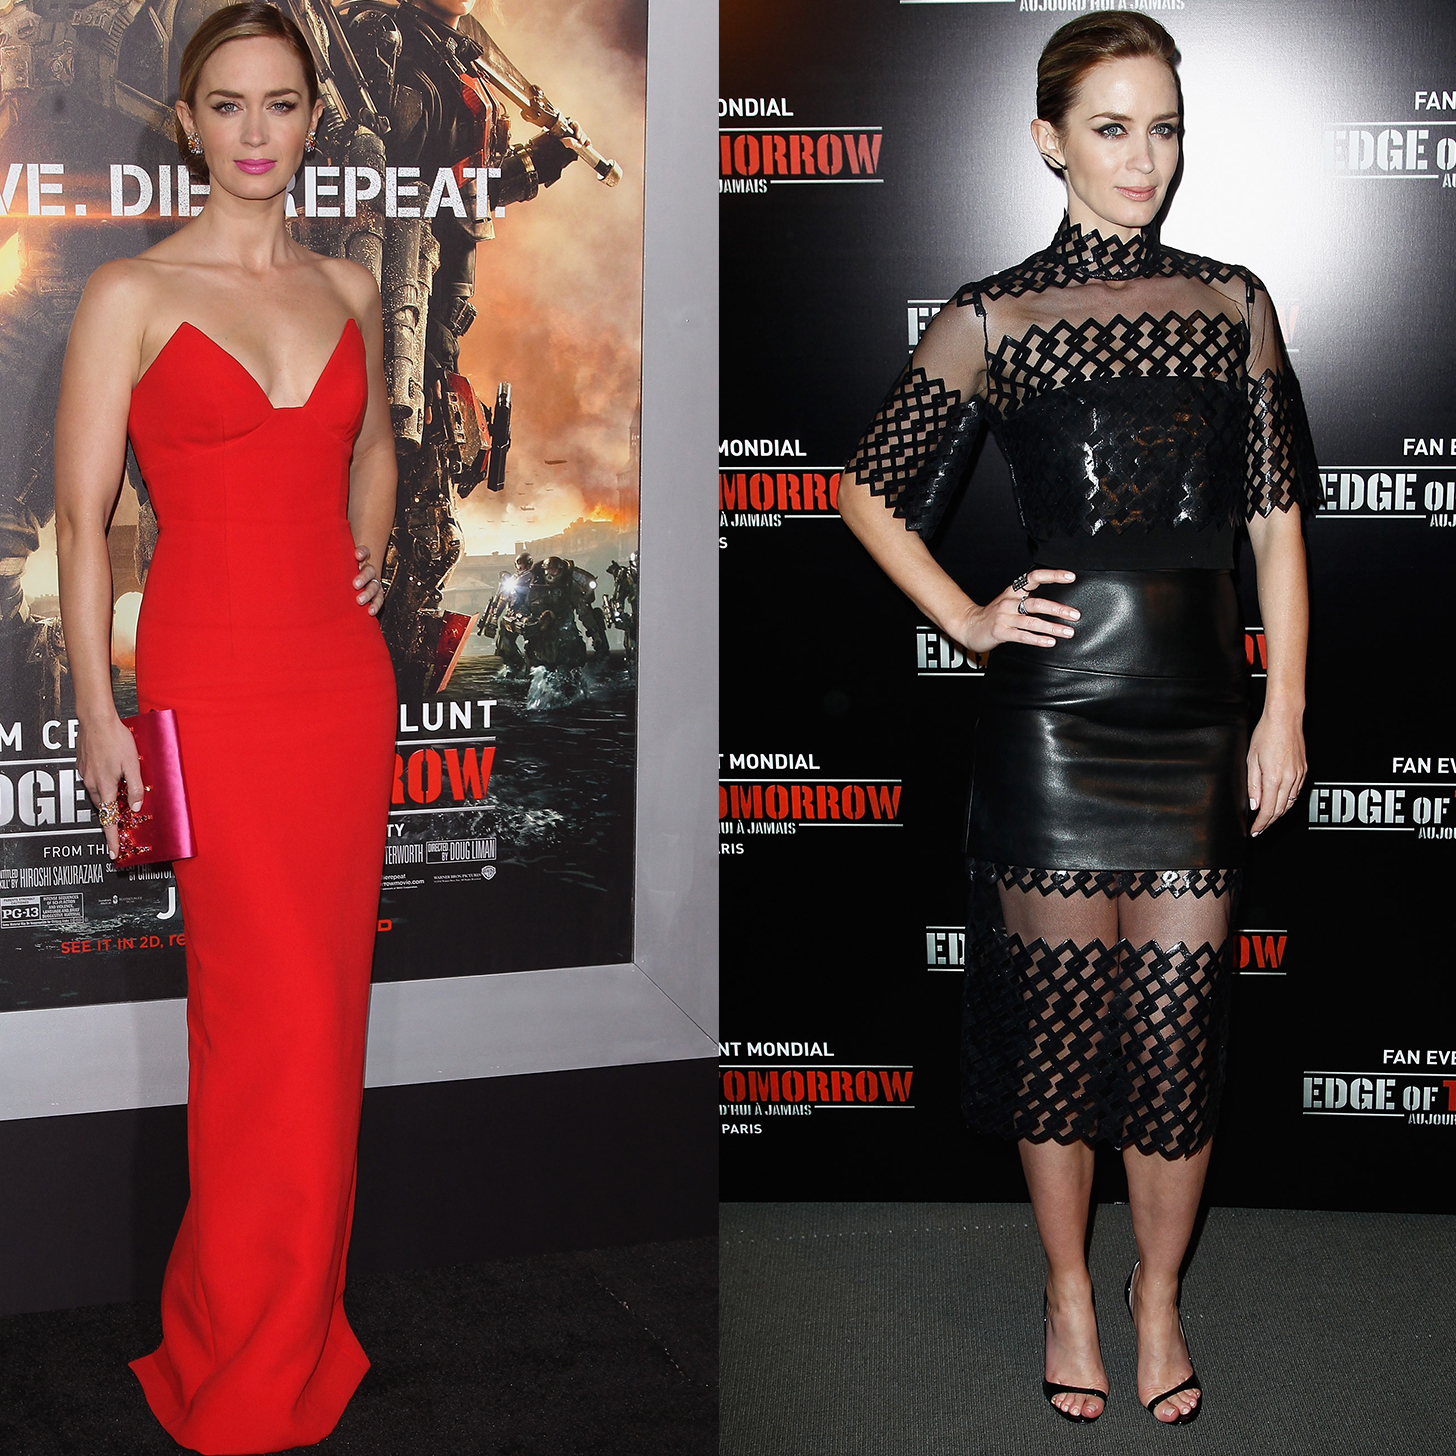 Emily Blunt Edge Of Tomorrow Workout Is on emily blunt Emily Blunt Edge Of Tomorrow Workout